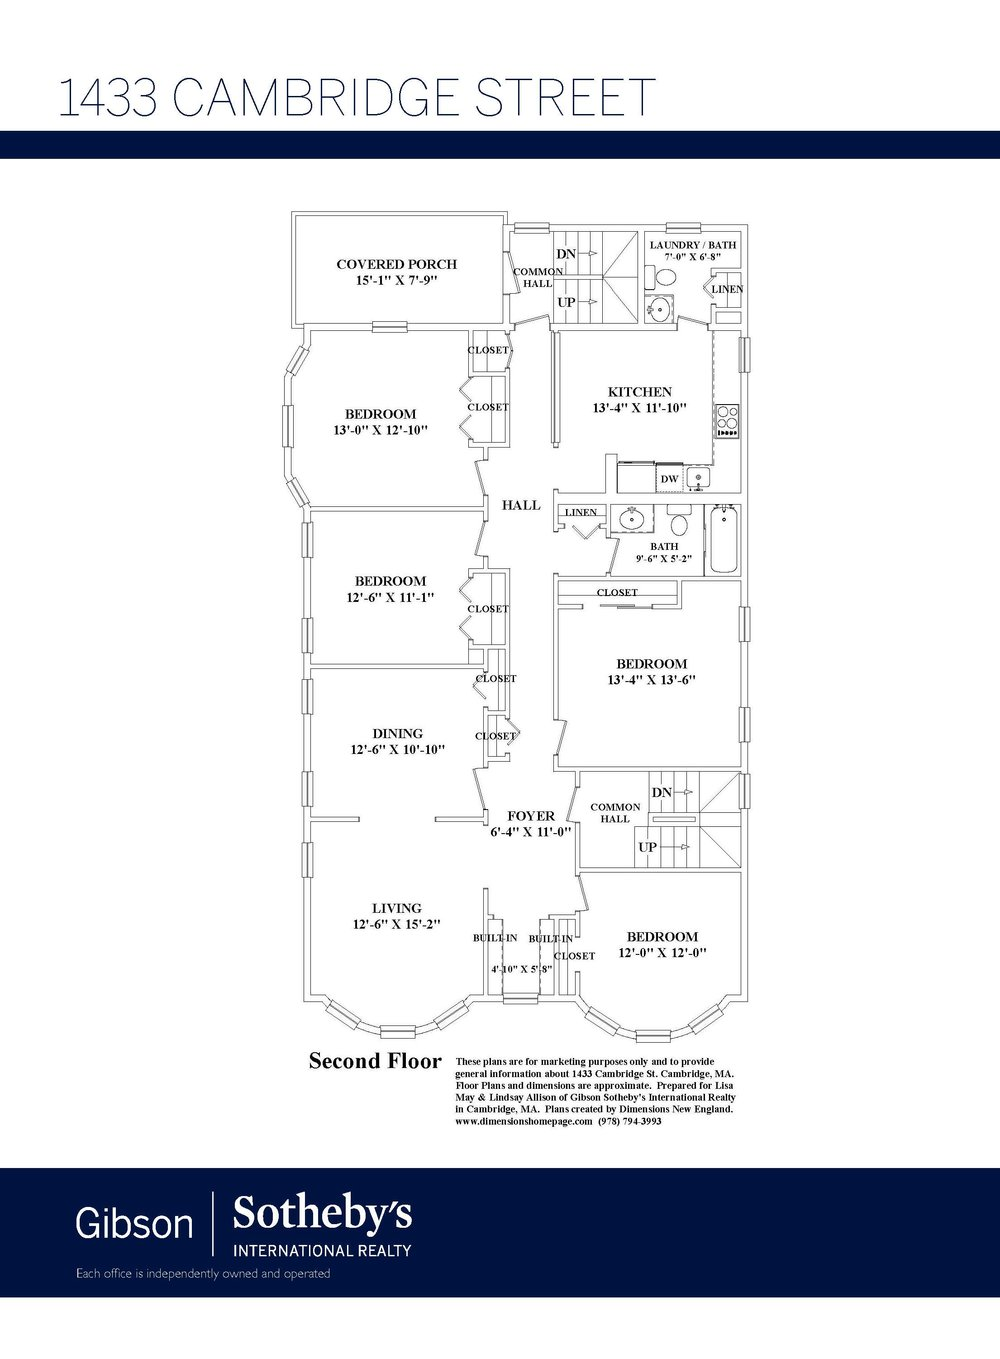 1433 Cambridge Branded floor plans_Page_2.jpg